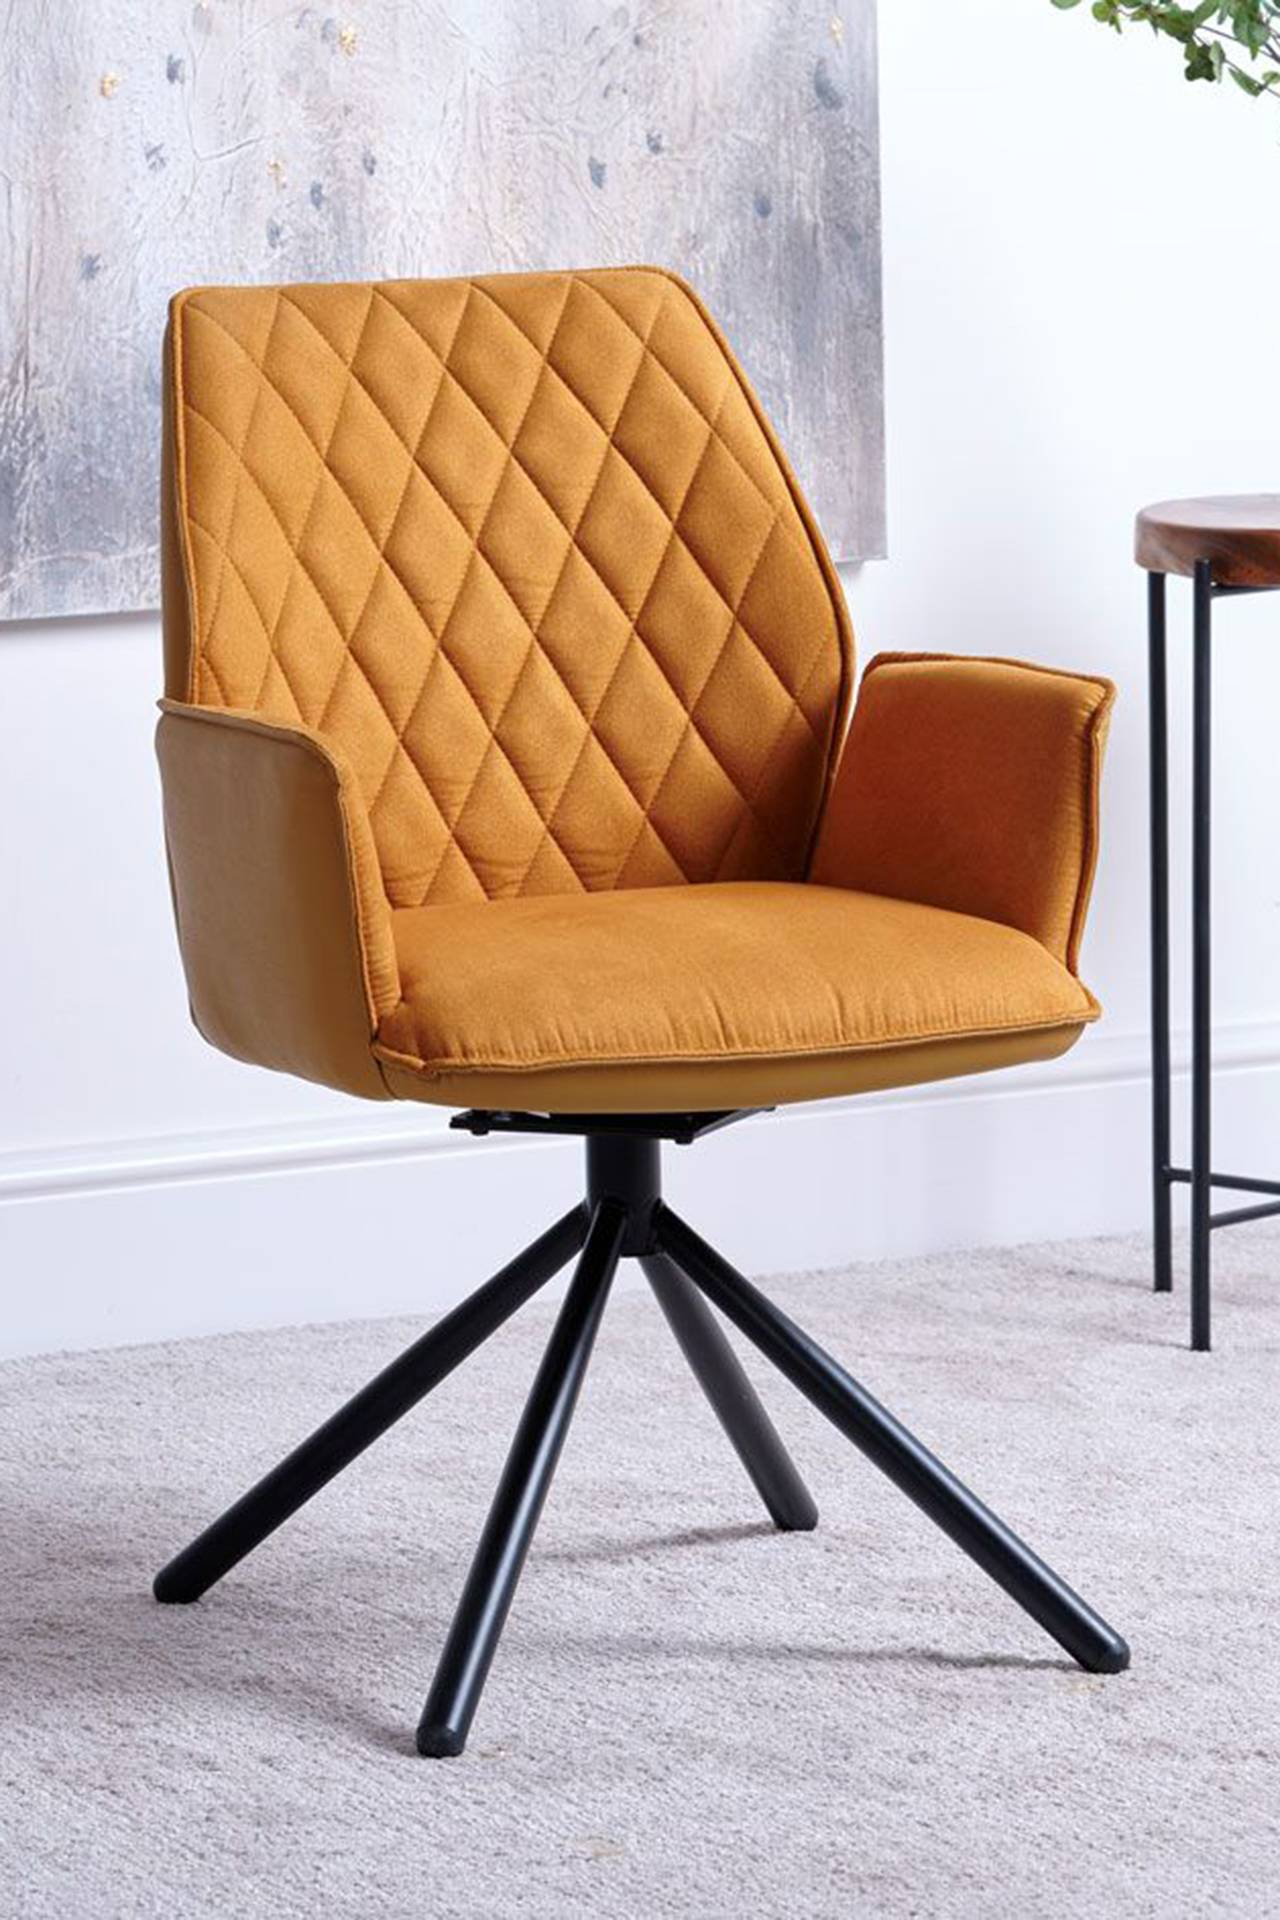 17 Best Office Chairs Still In Stock Desk Chairs For Wfh Glamour Uk